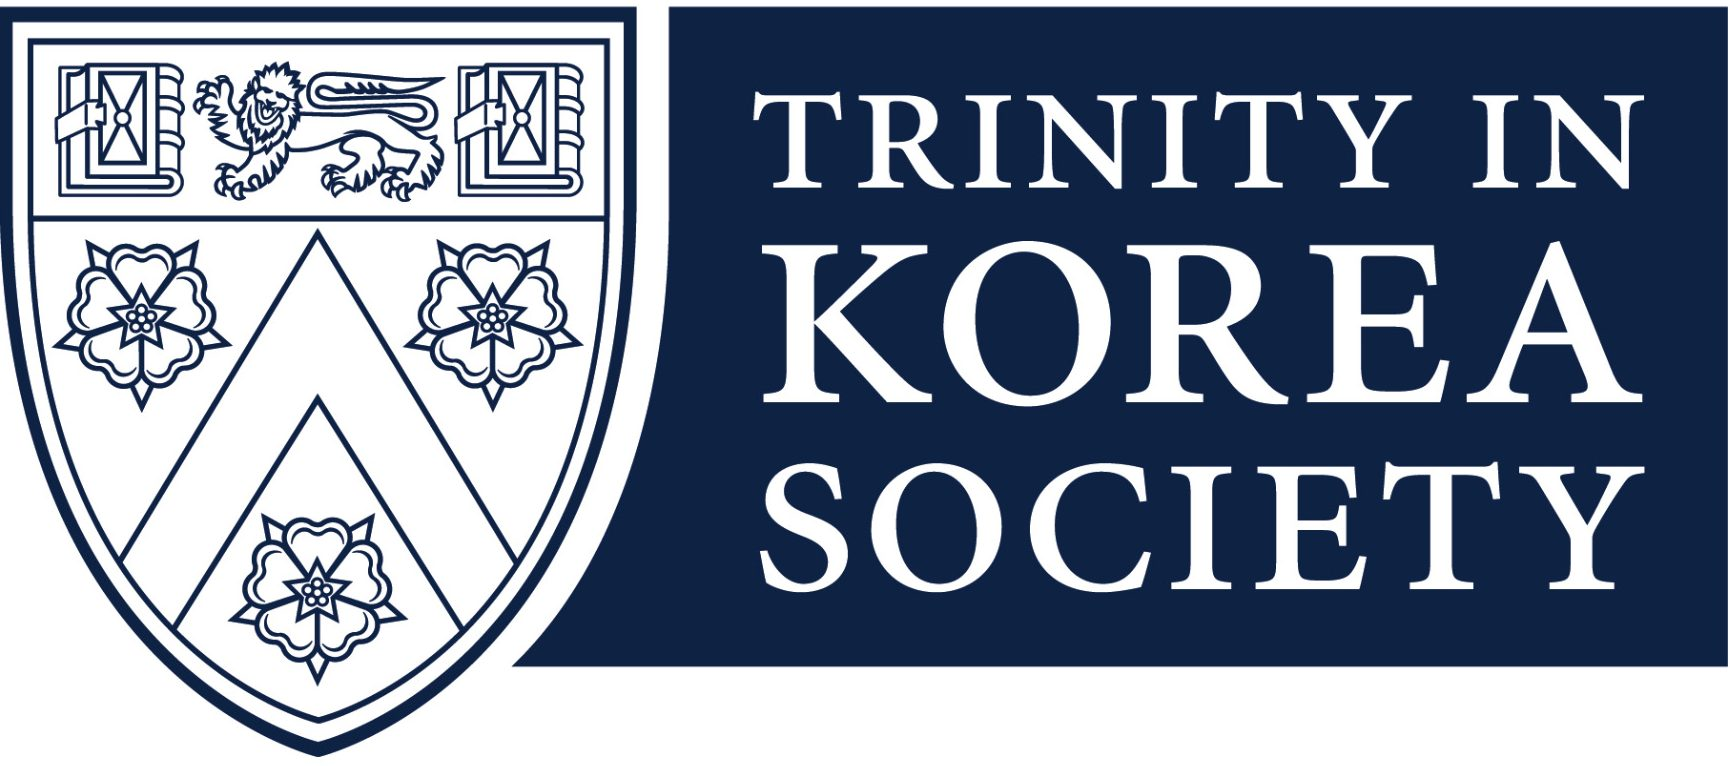 Trinity in Korea Society